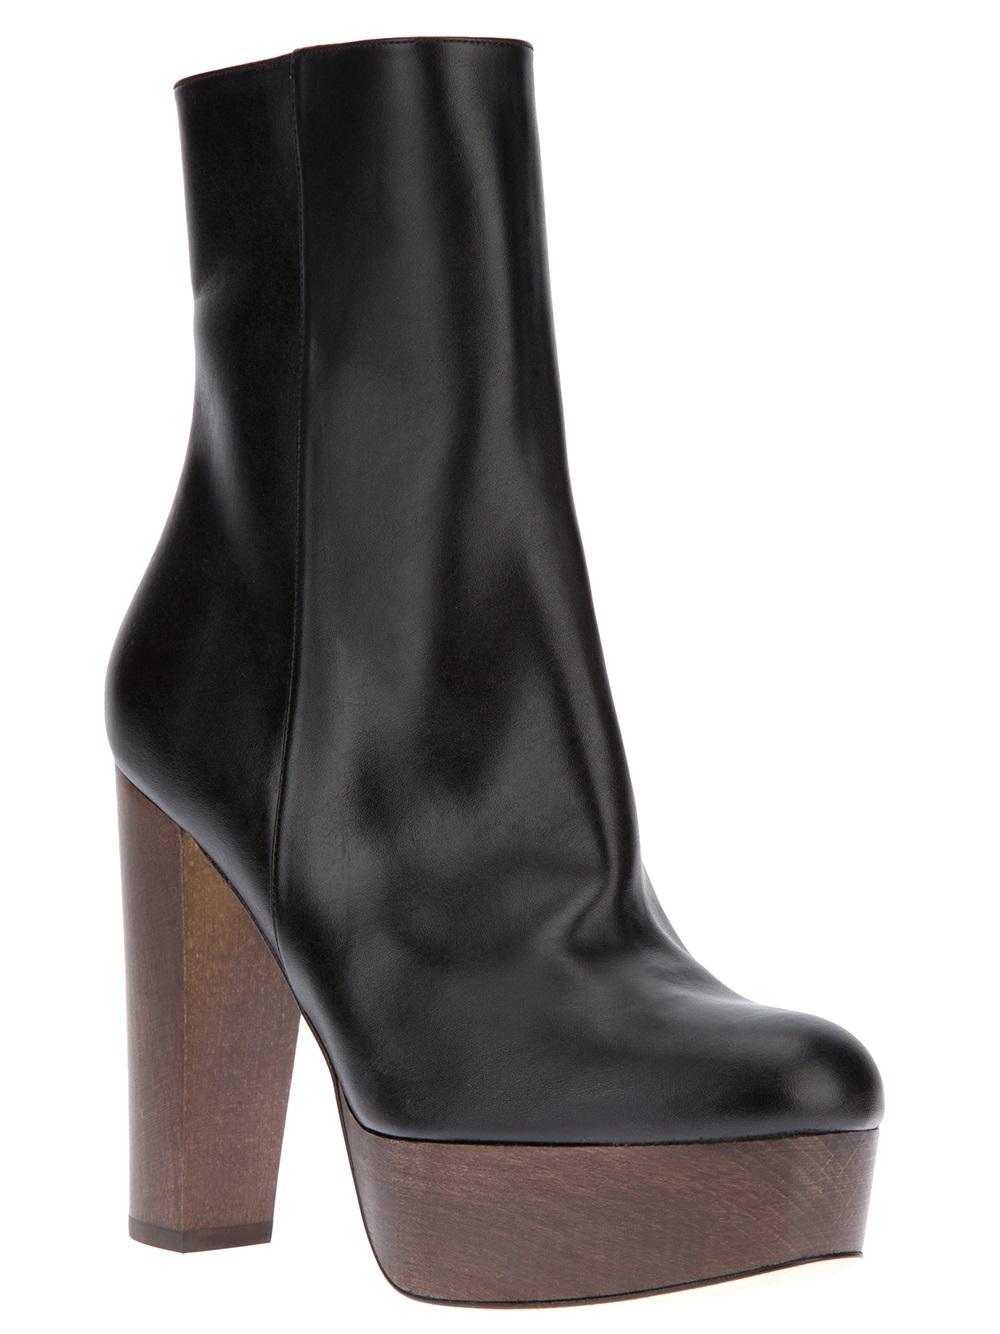 Stella McCartney Platform Mid-Calf Boots footaction cheap price free shipping extremely clearance new arrival qs1oiK